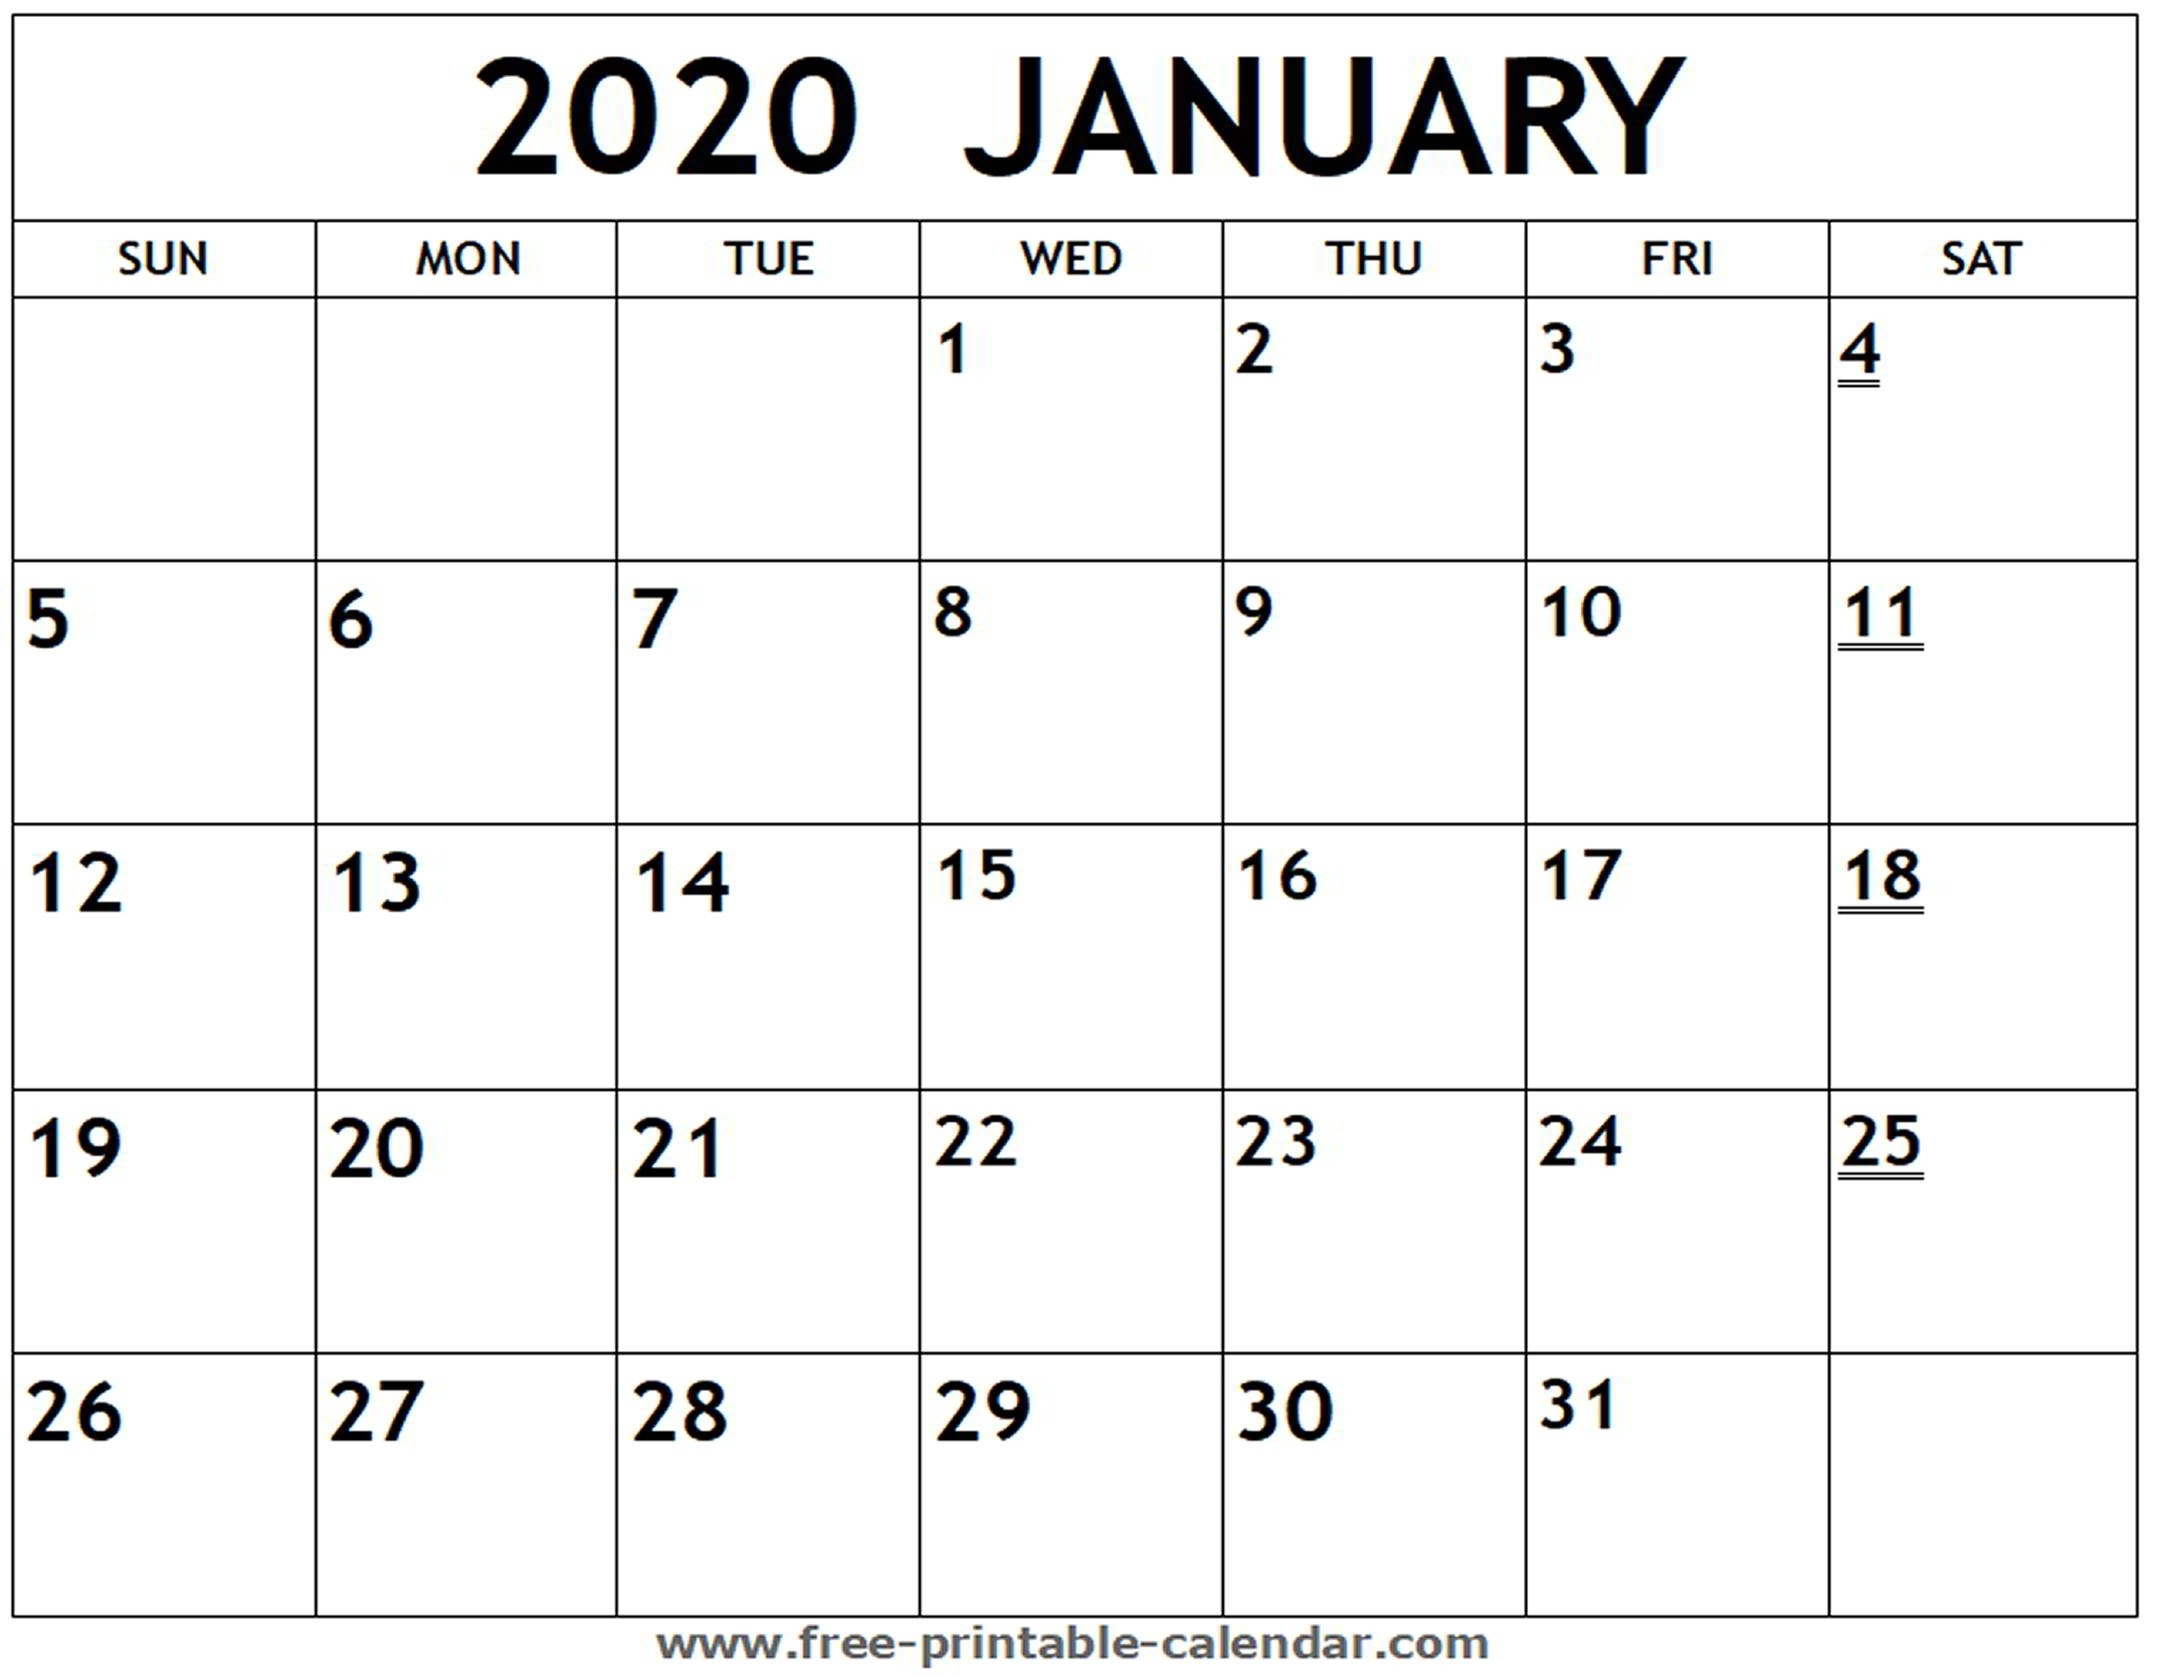 2020 Blank Calendar Monthly - Wpa.wpart.co-Blank Calendar 2020 Printable Monthly